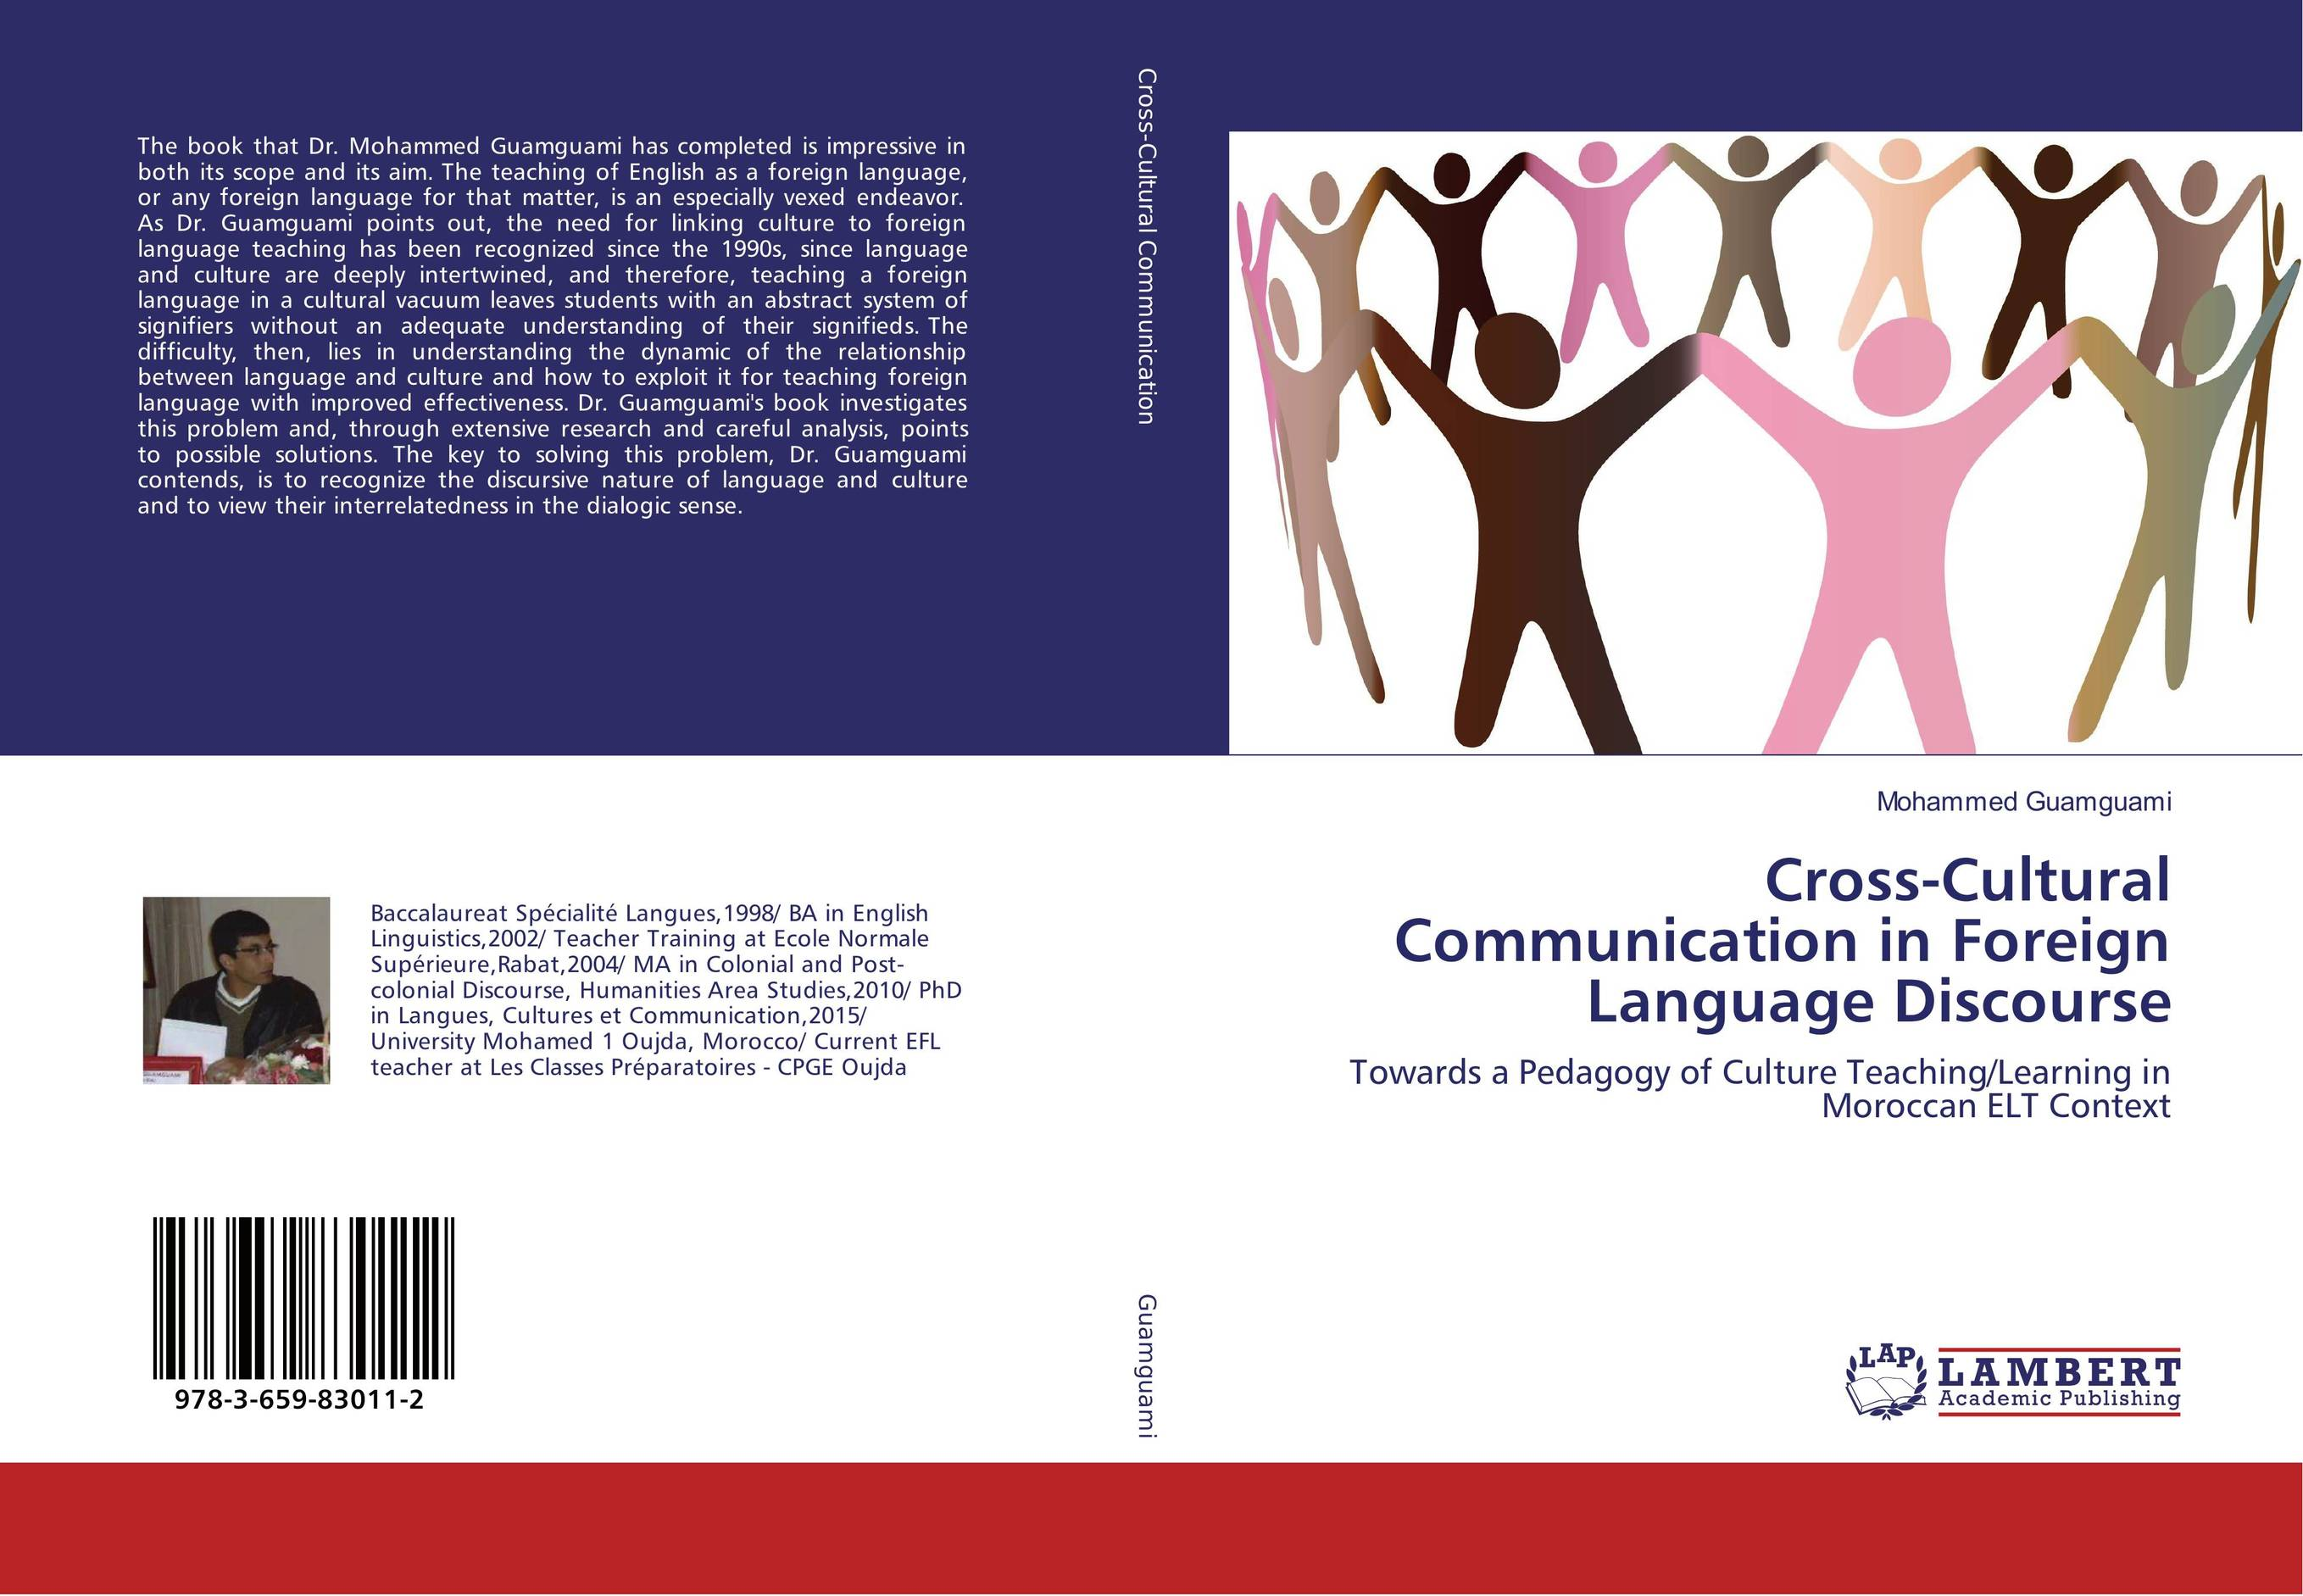 an analysis of oscar lewis culture of poverty thesis цена  cross cultural communication in foreign language discourse an analysis of oscar lewis culture of poverty